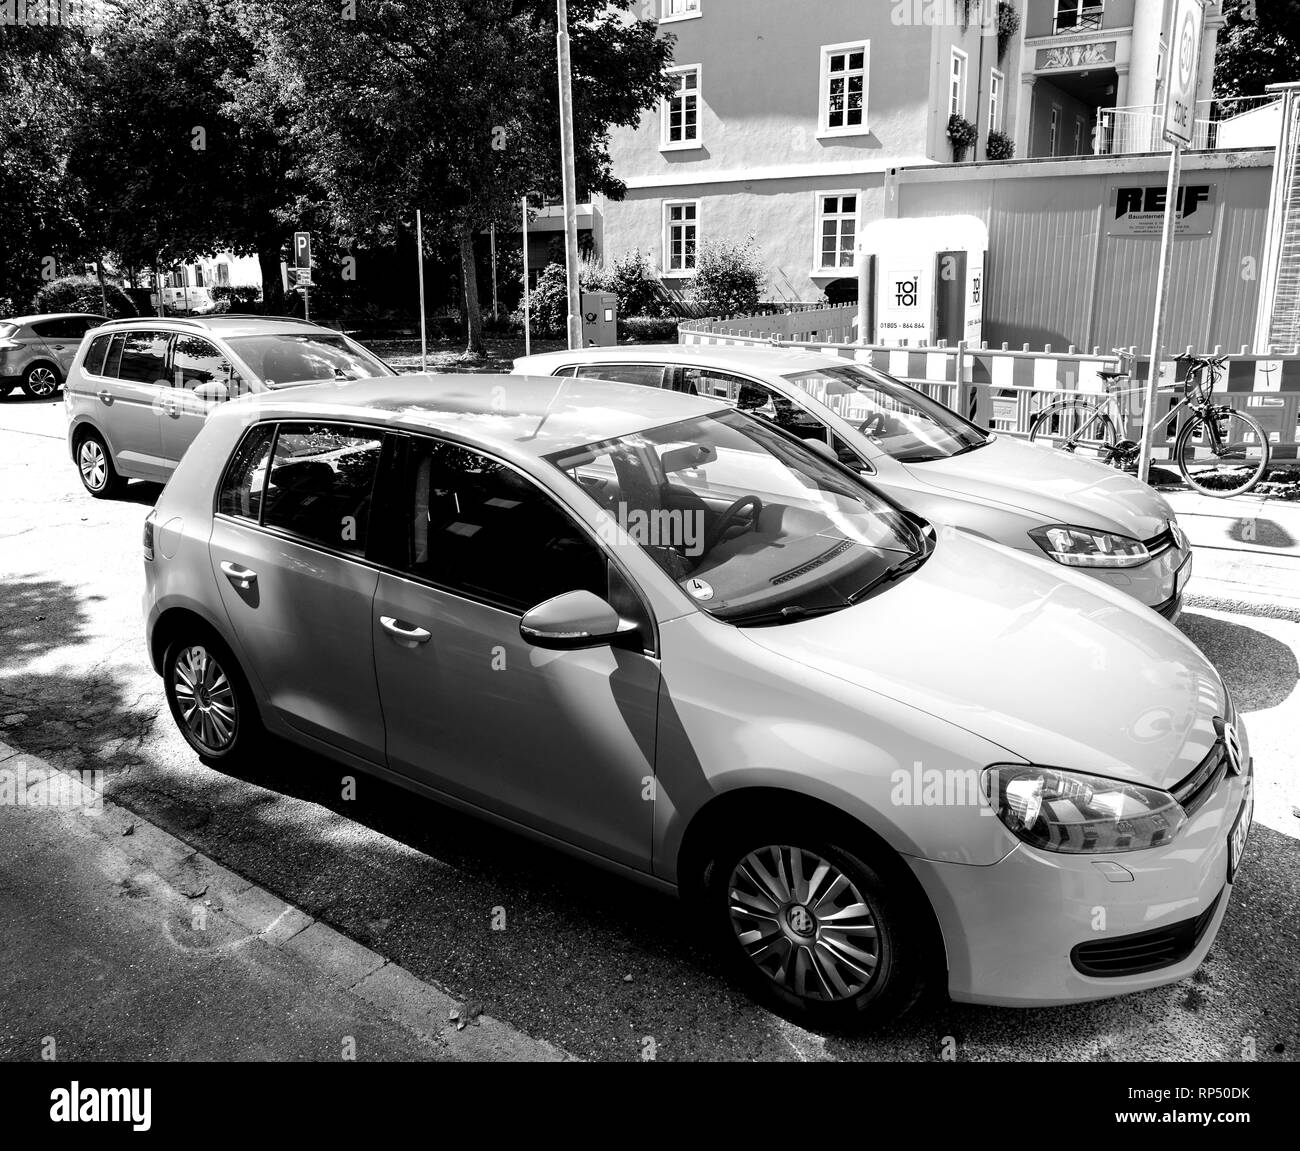 KEHL, GERMANY - SEP 1, 2017: Side elevated view of fleet of Volkswagen Golf cars parked near construction site in German city black and white - Stock Image